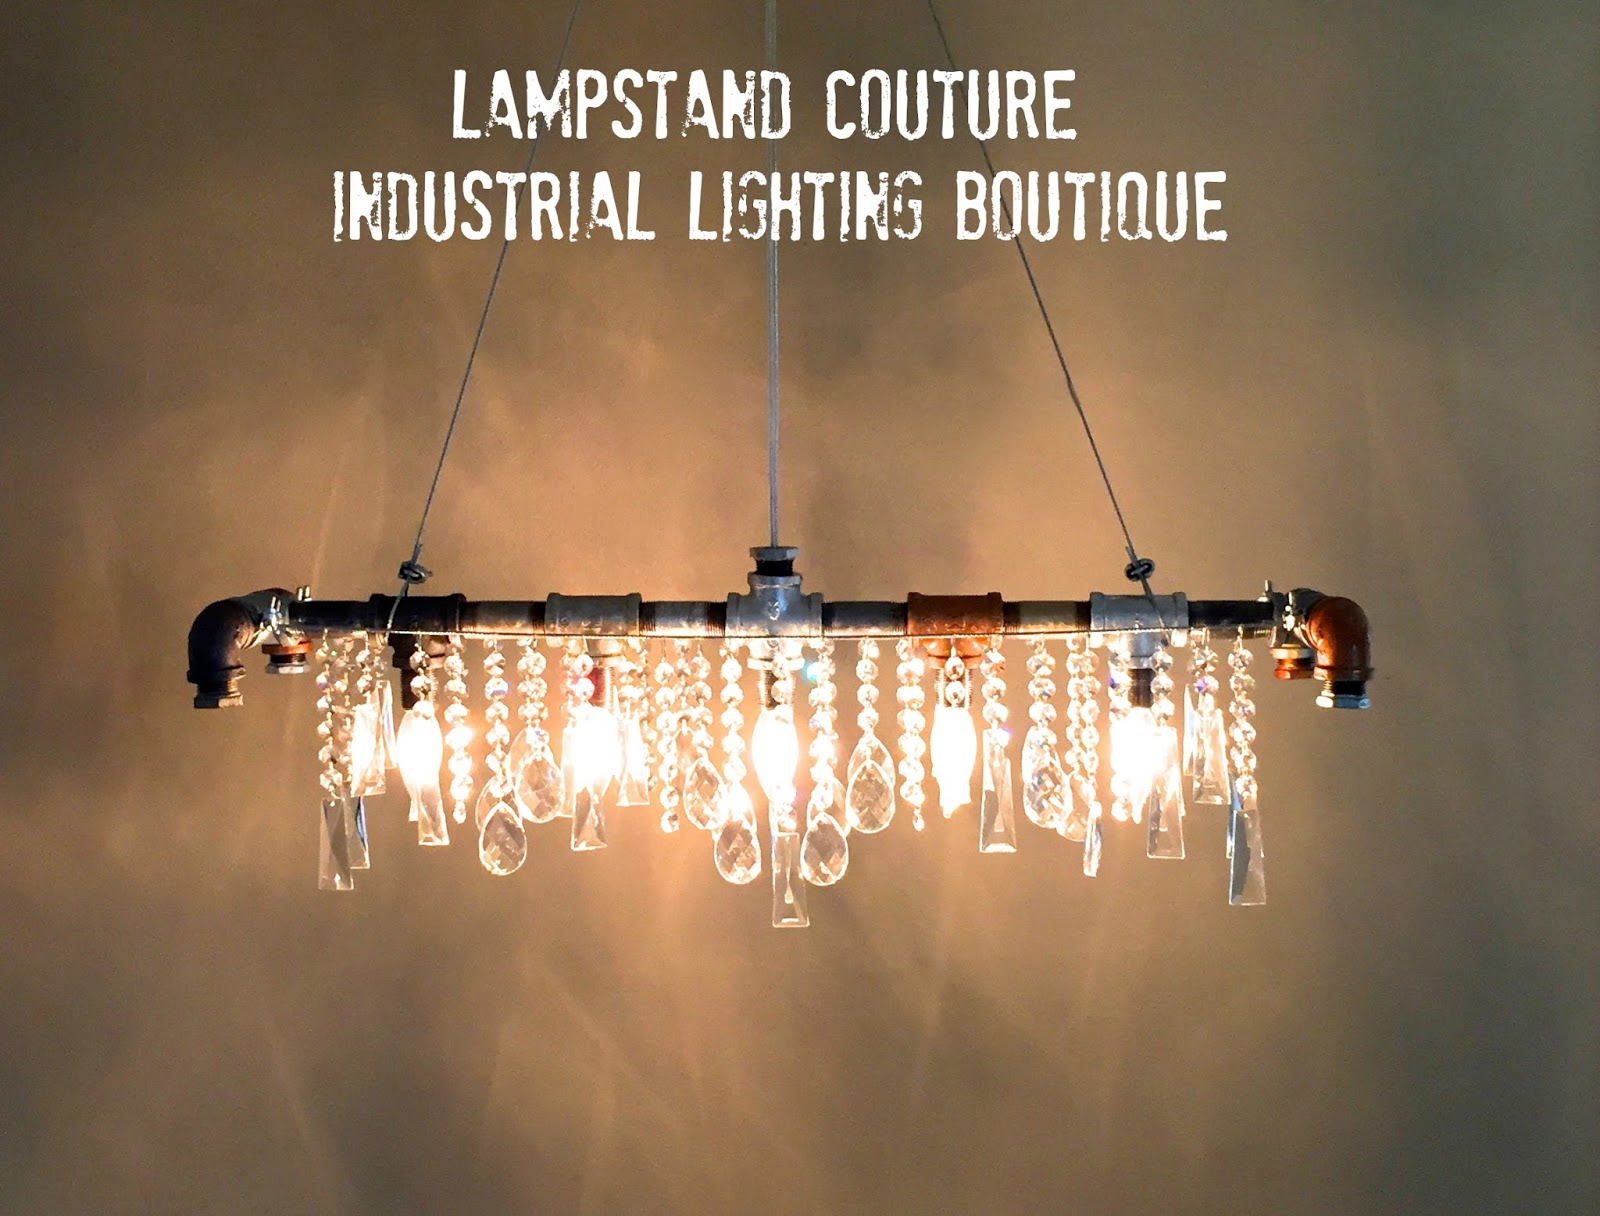 Lampstand Couture Industrial Lighting Boutique